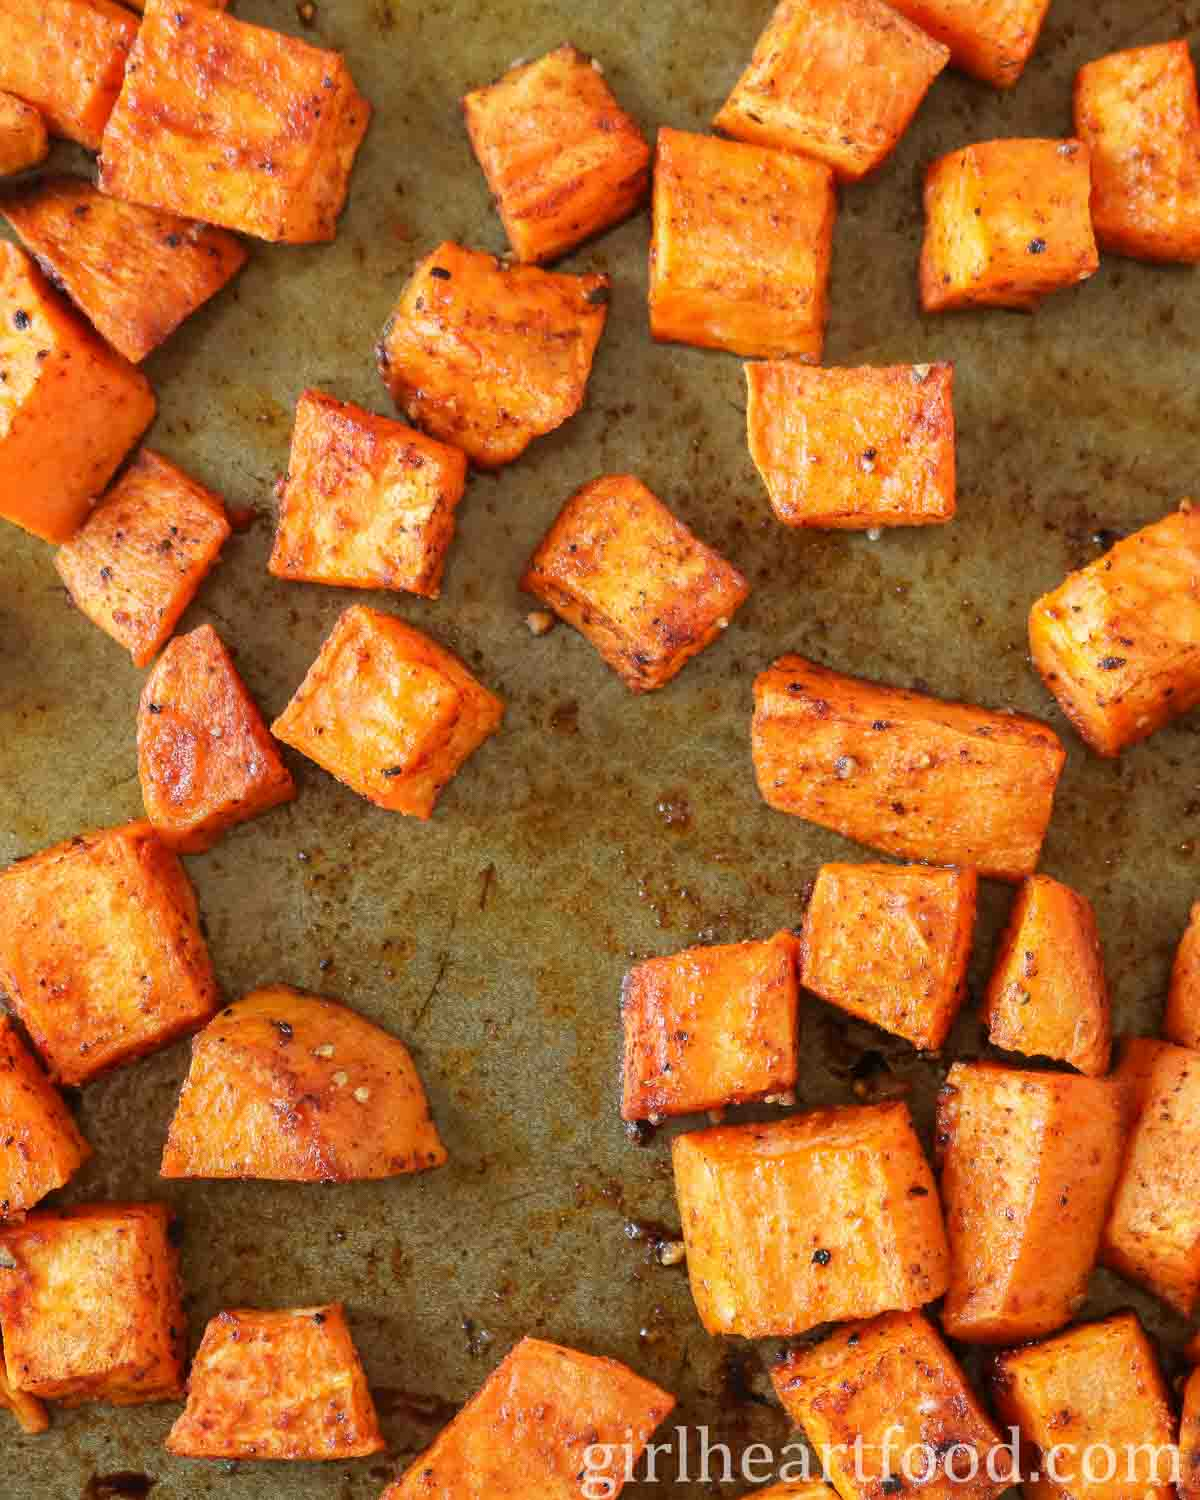 Cubes of roasted sweet potato on a sheet pan.